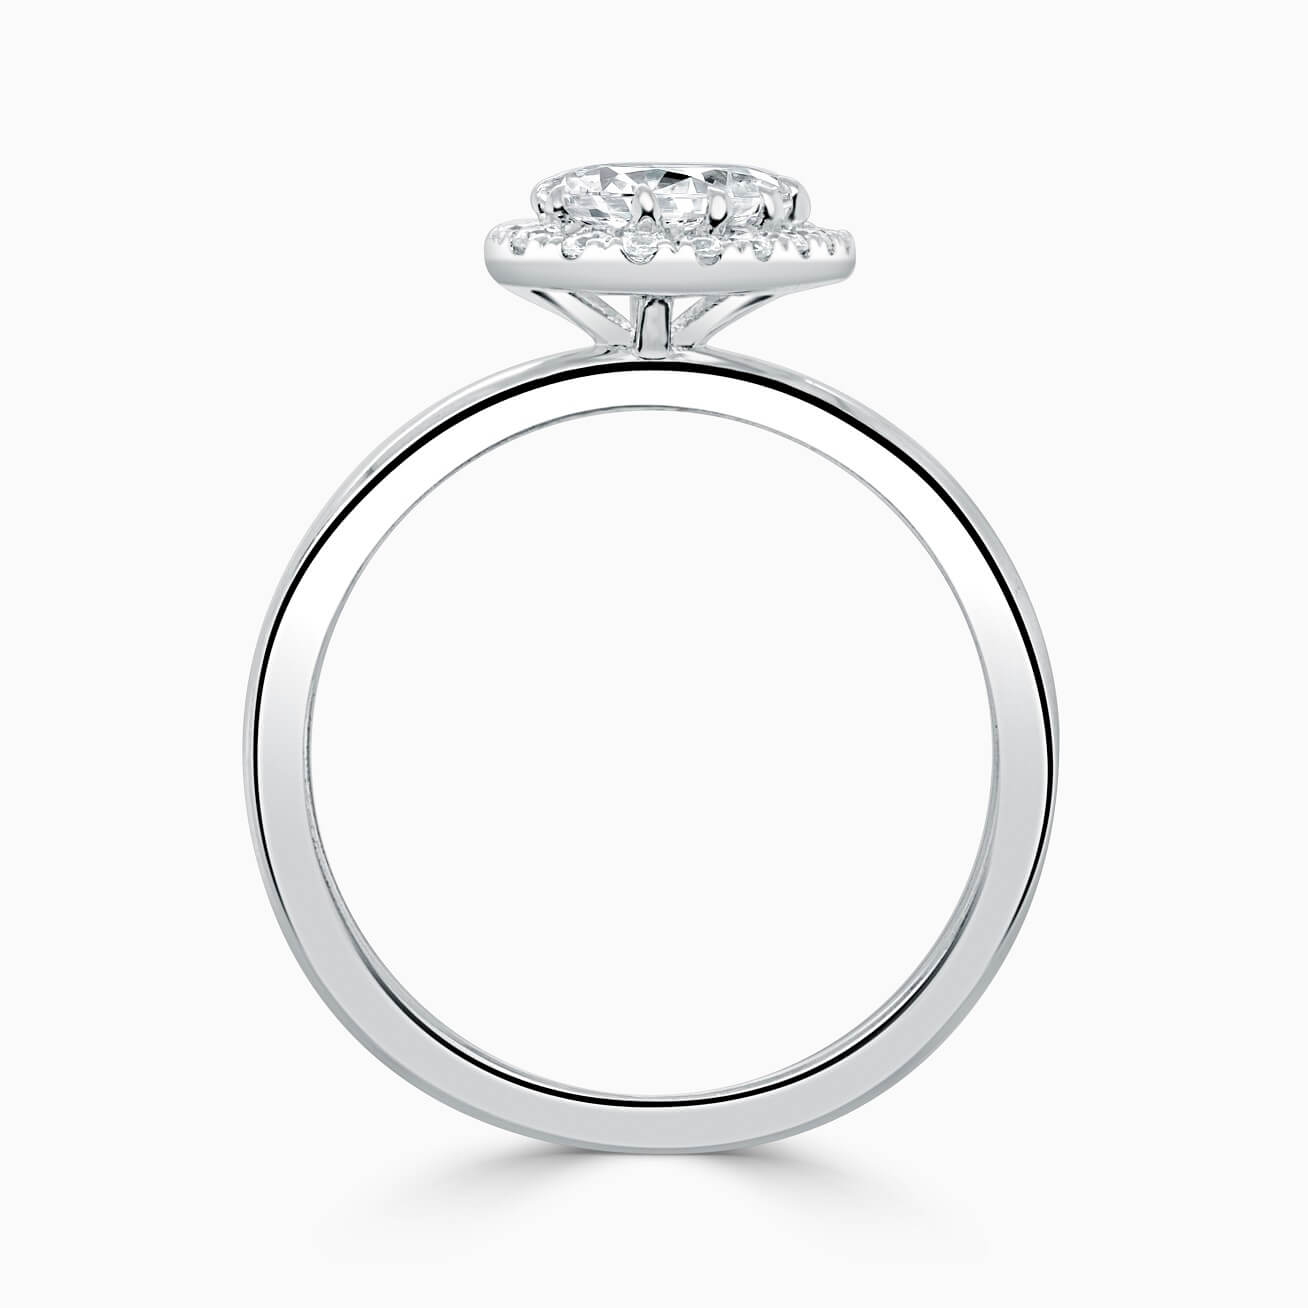 18ct White Gold Pear Shape Side Halo Engagement Ring